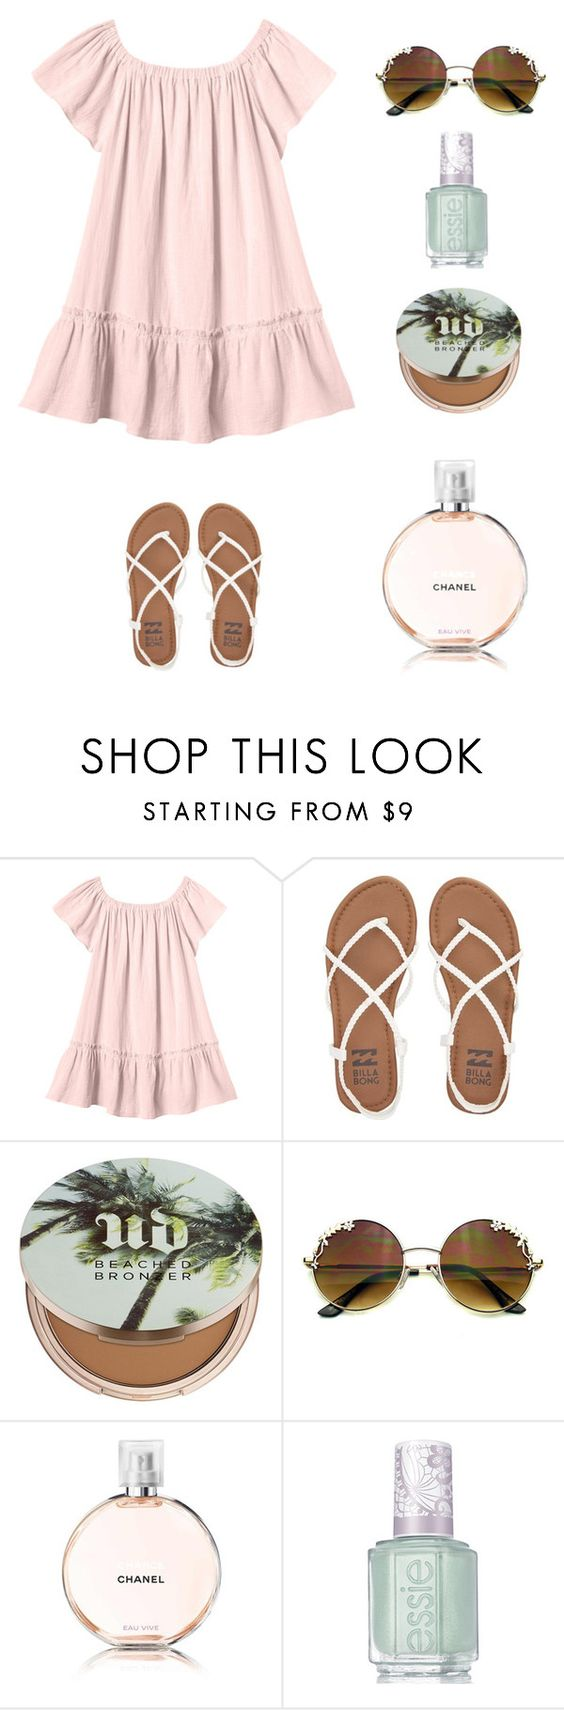 """""""Comfy but stylish summer outfit"""" by snhollick ❤ liked on Polyvore featuring Rebecca Taylor, Billabong, Urban Decay, Chanel and Essie"""